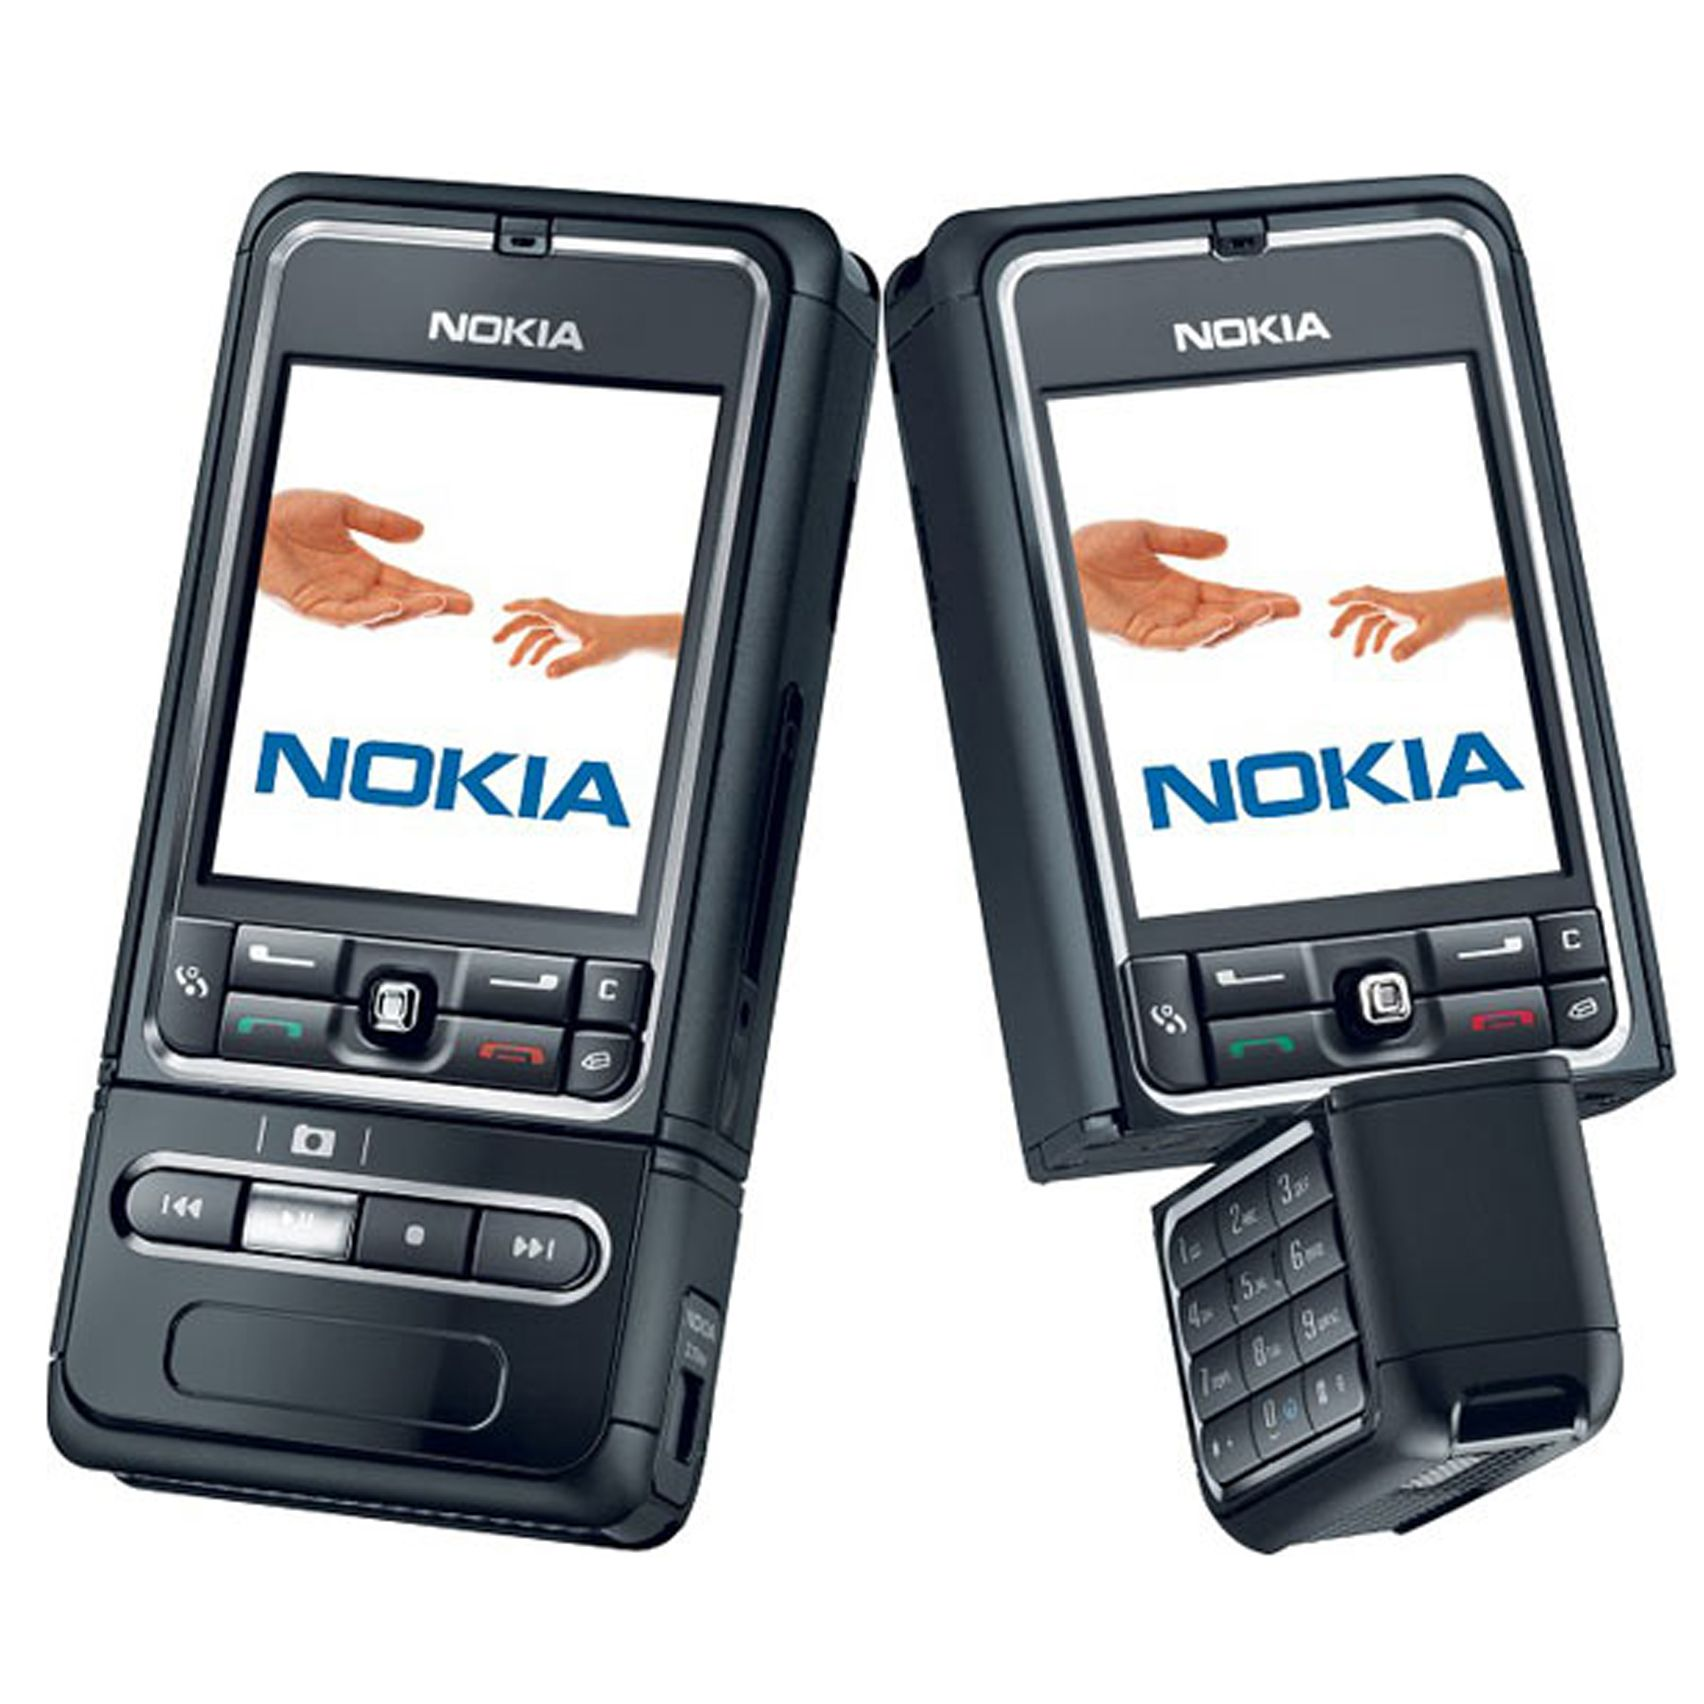 Nokia 3250 - I used this for almost 4 years  :D